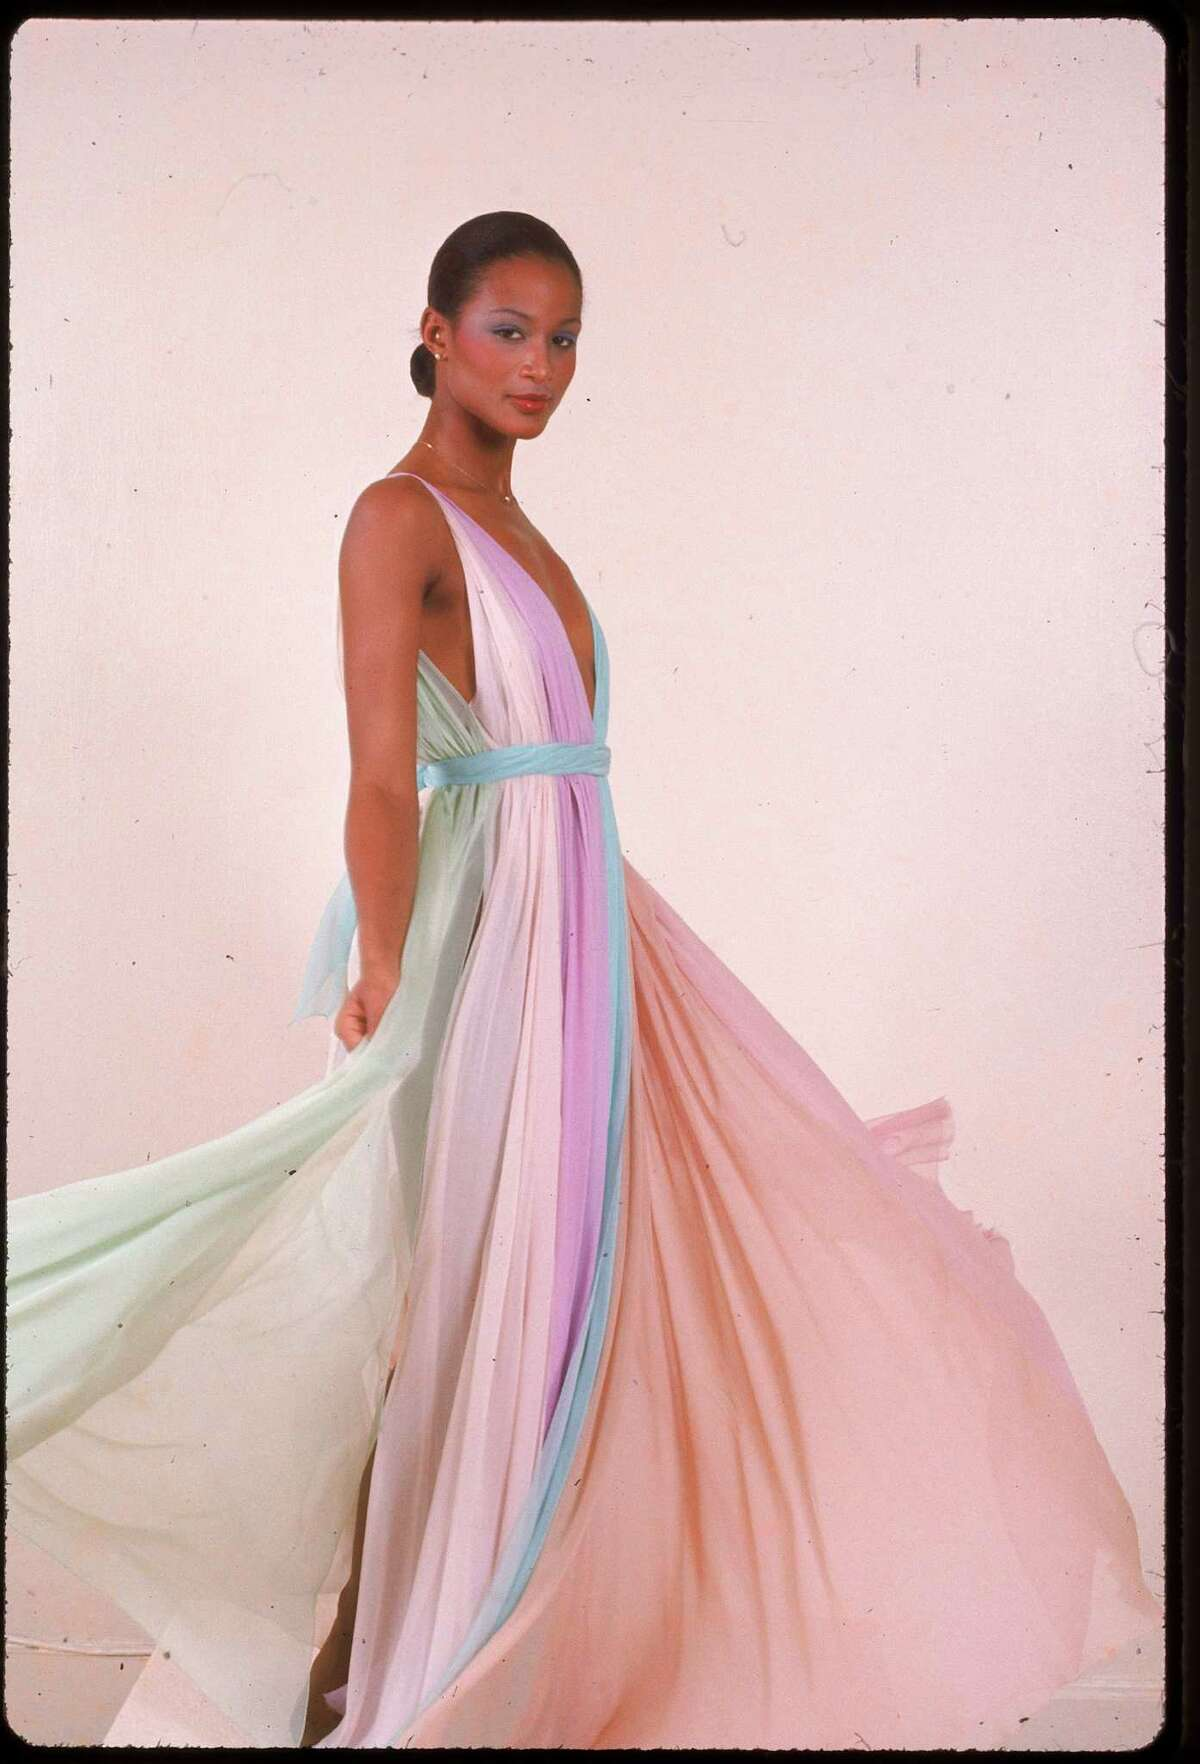 Beverly Johnson In 1974, Johnsonbecame the first African-American fashion model toappear on the cover of Vogue magazine.